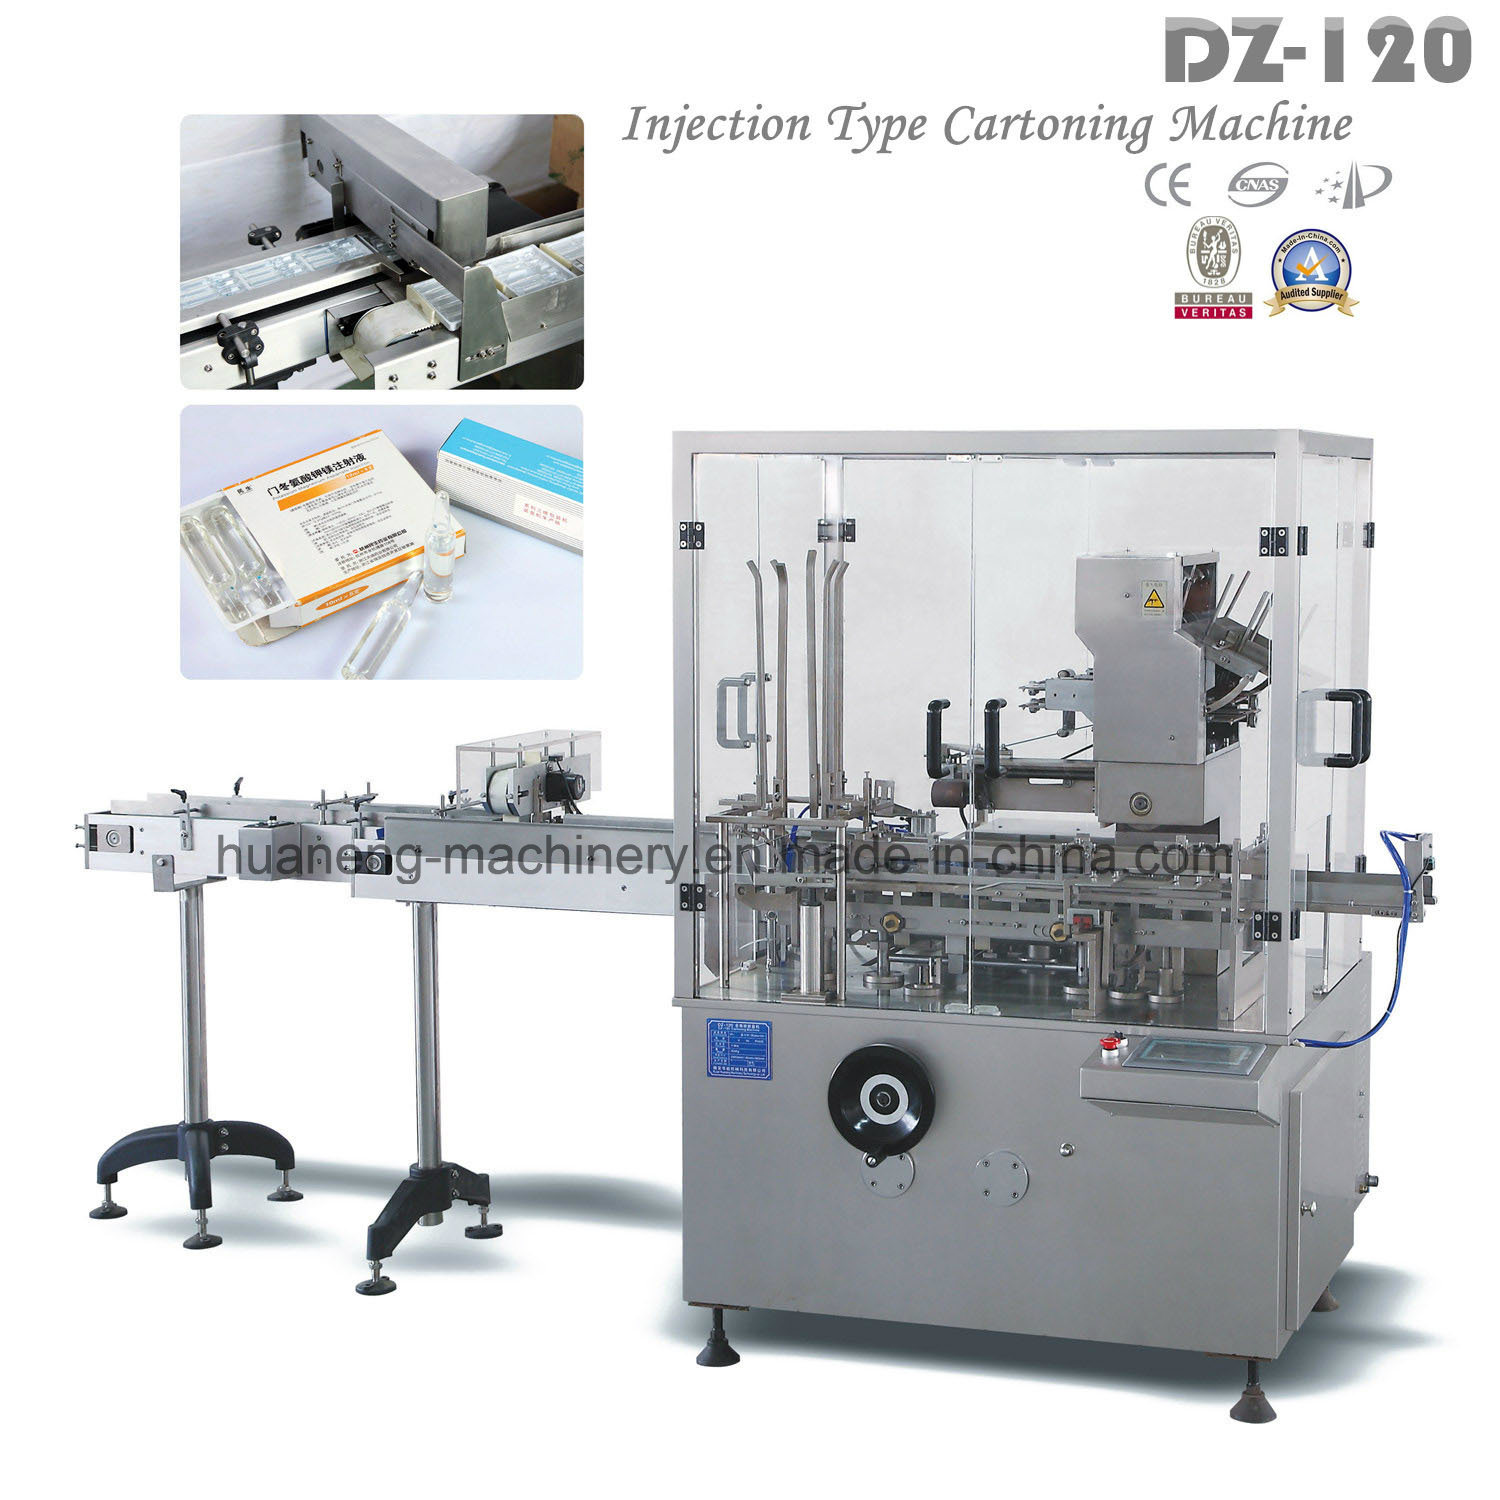 Automatic Tubes Injection Cartoning Machine (DZ-120)